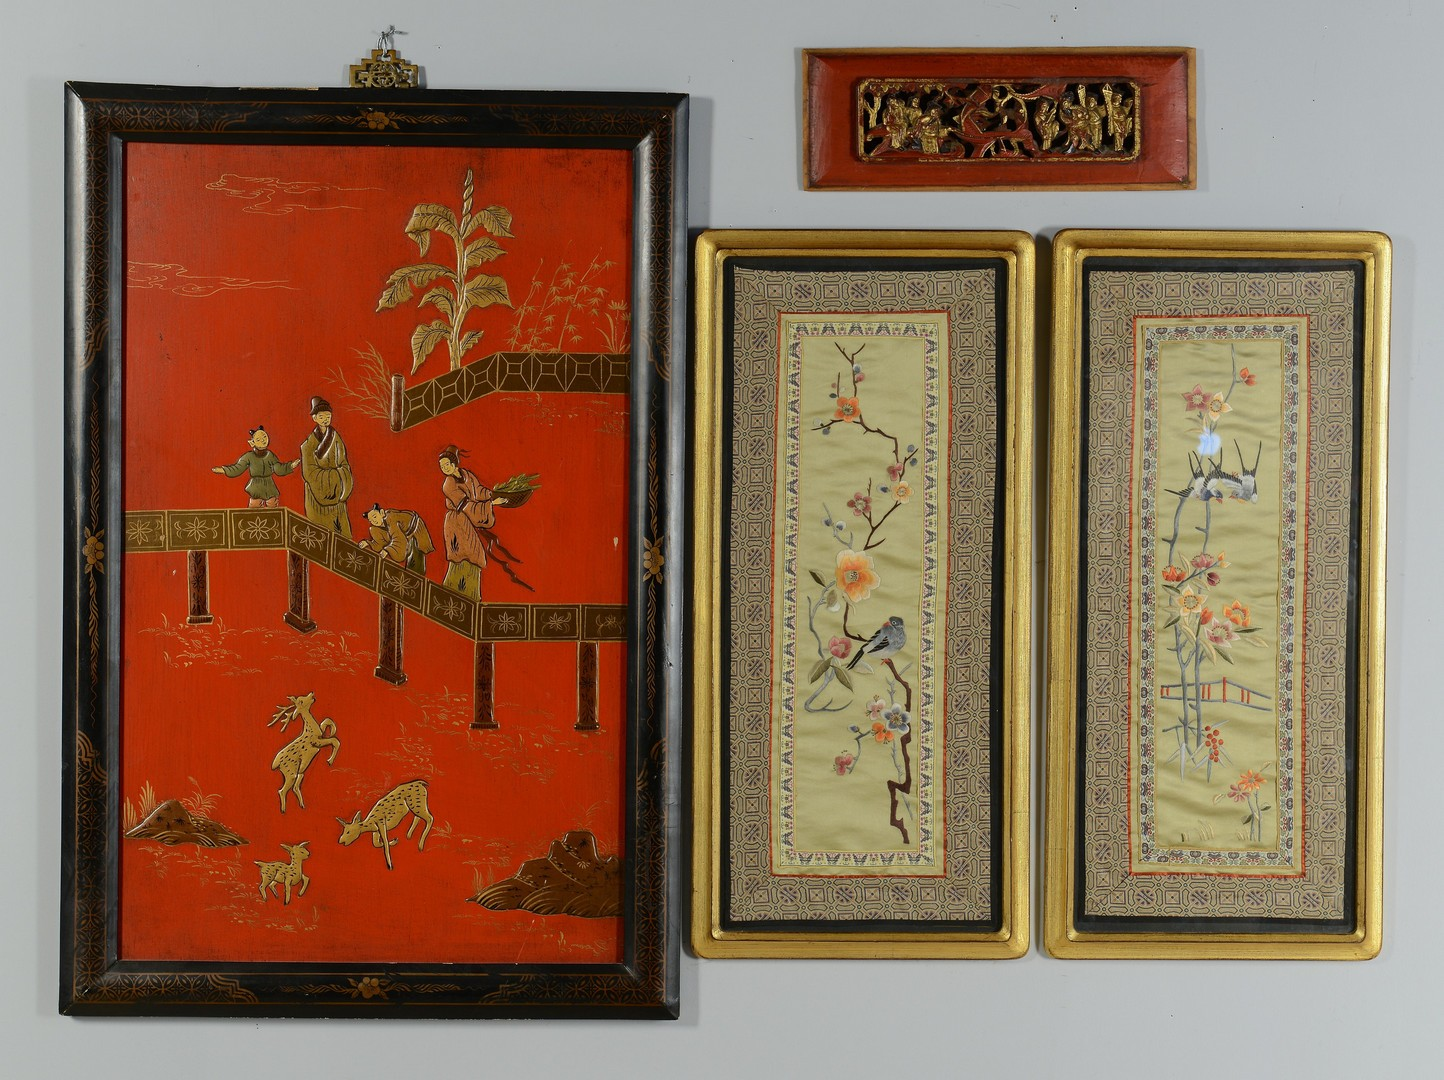 Lot 3383207: 5 Asian Framed Items textiles, lacquer and woodcut